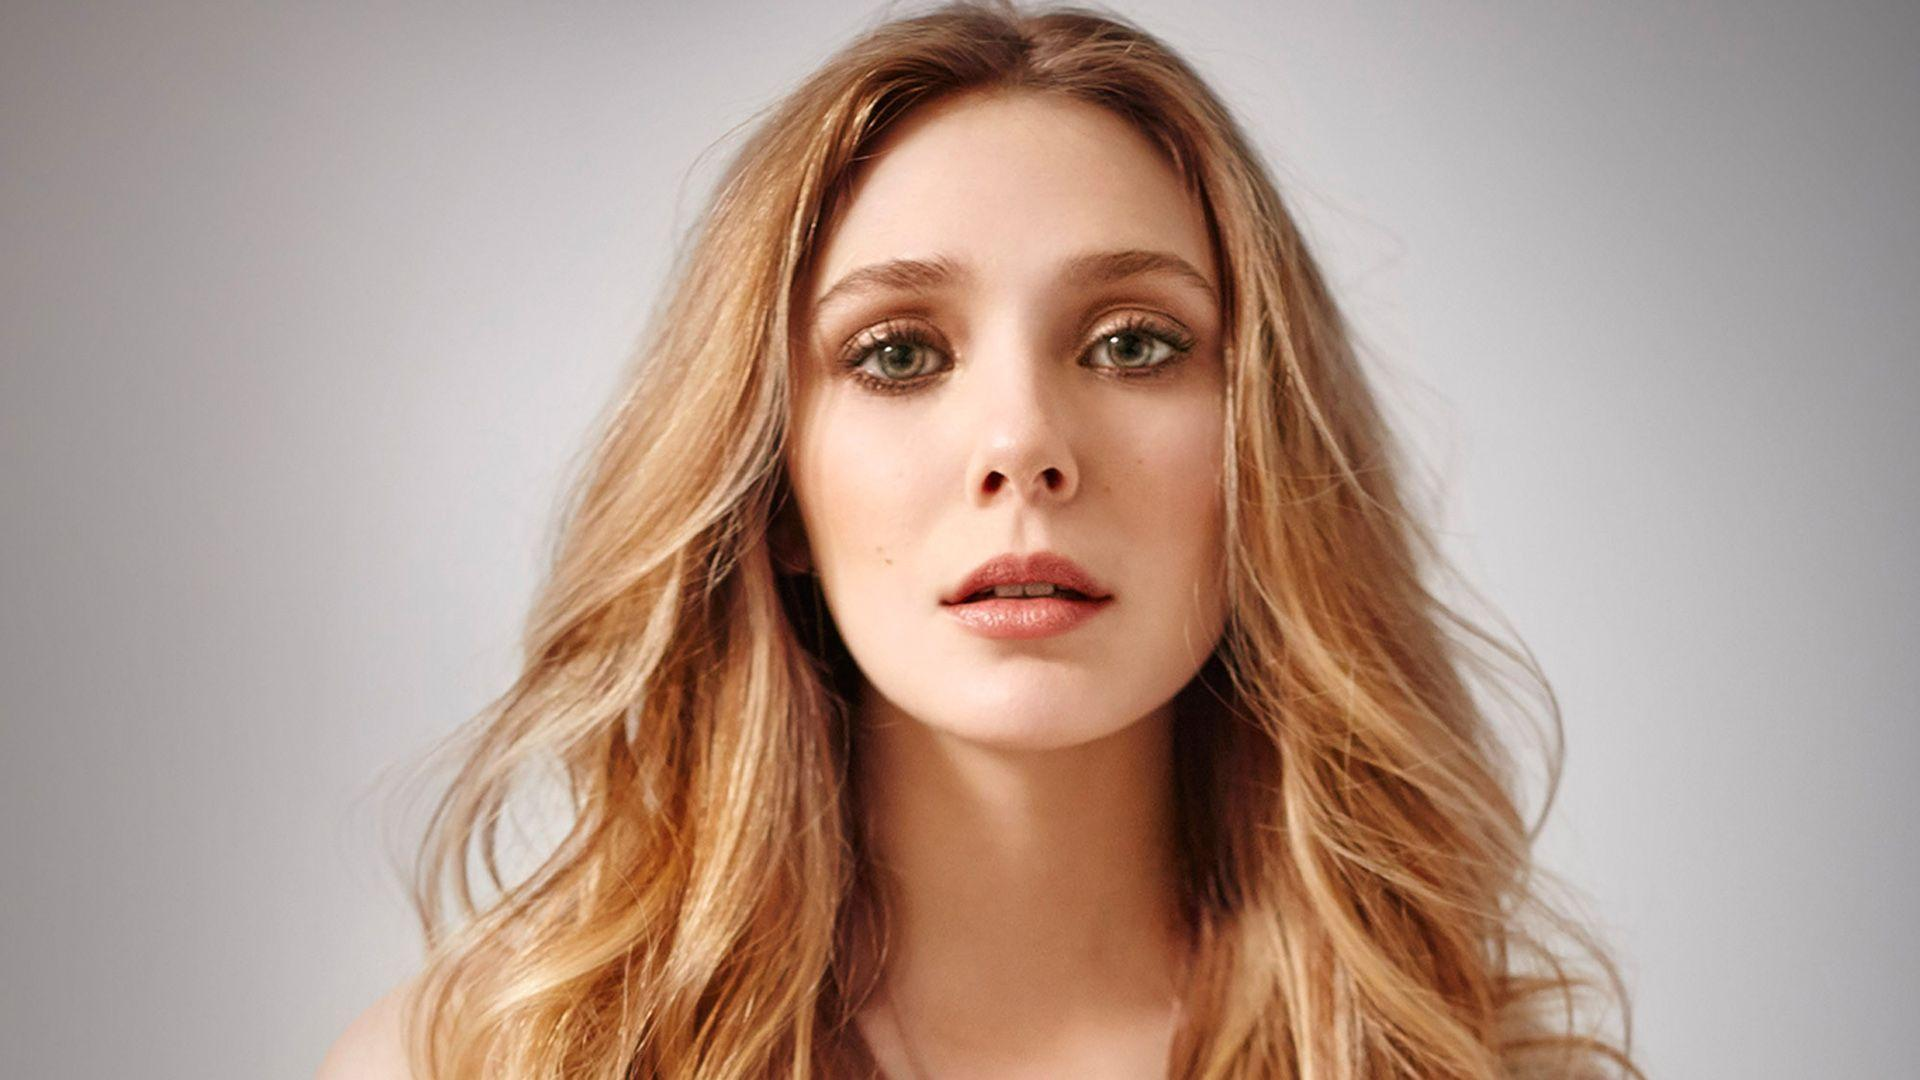 Elizabeth Olsen Hot Hd Wallpapers 2014 15 Pictures To Pin On ...